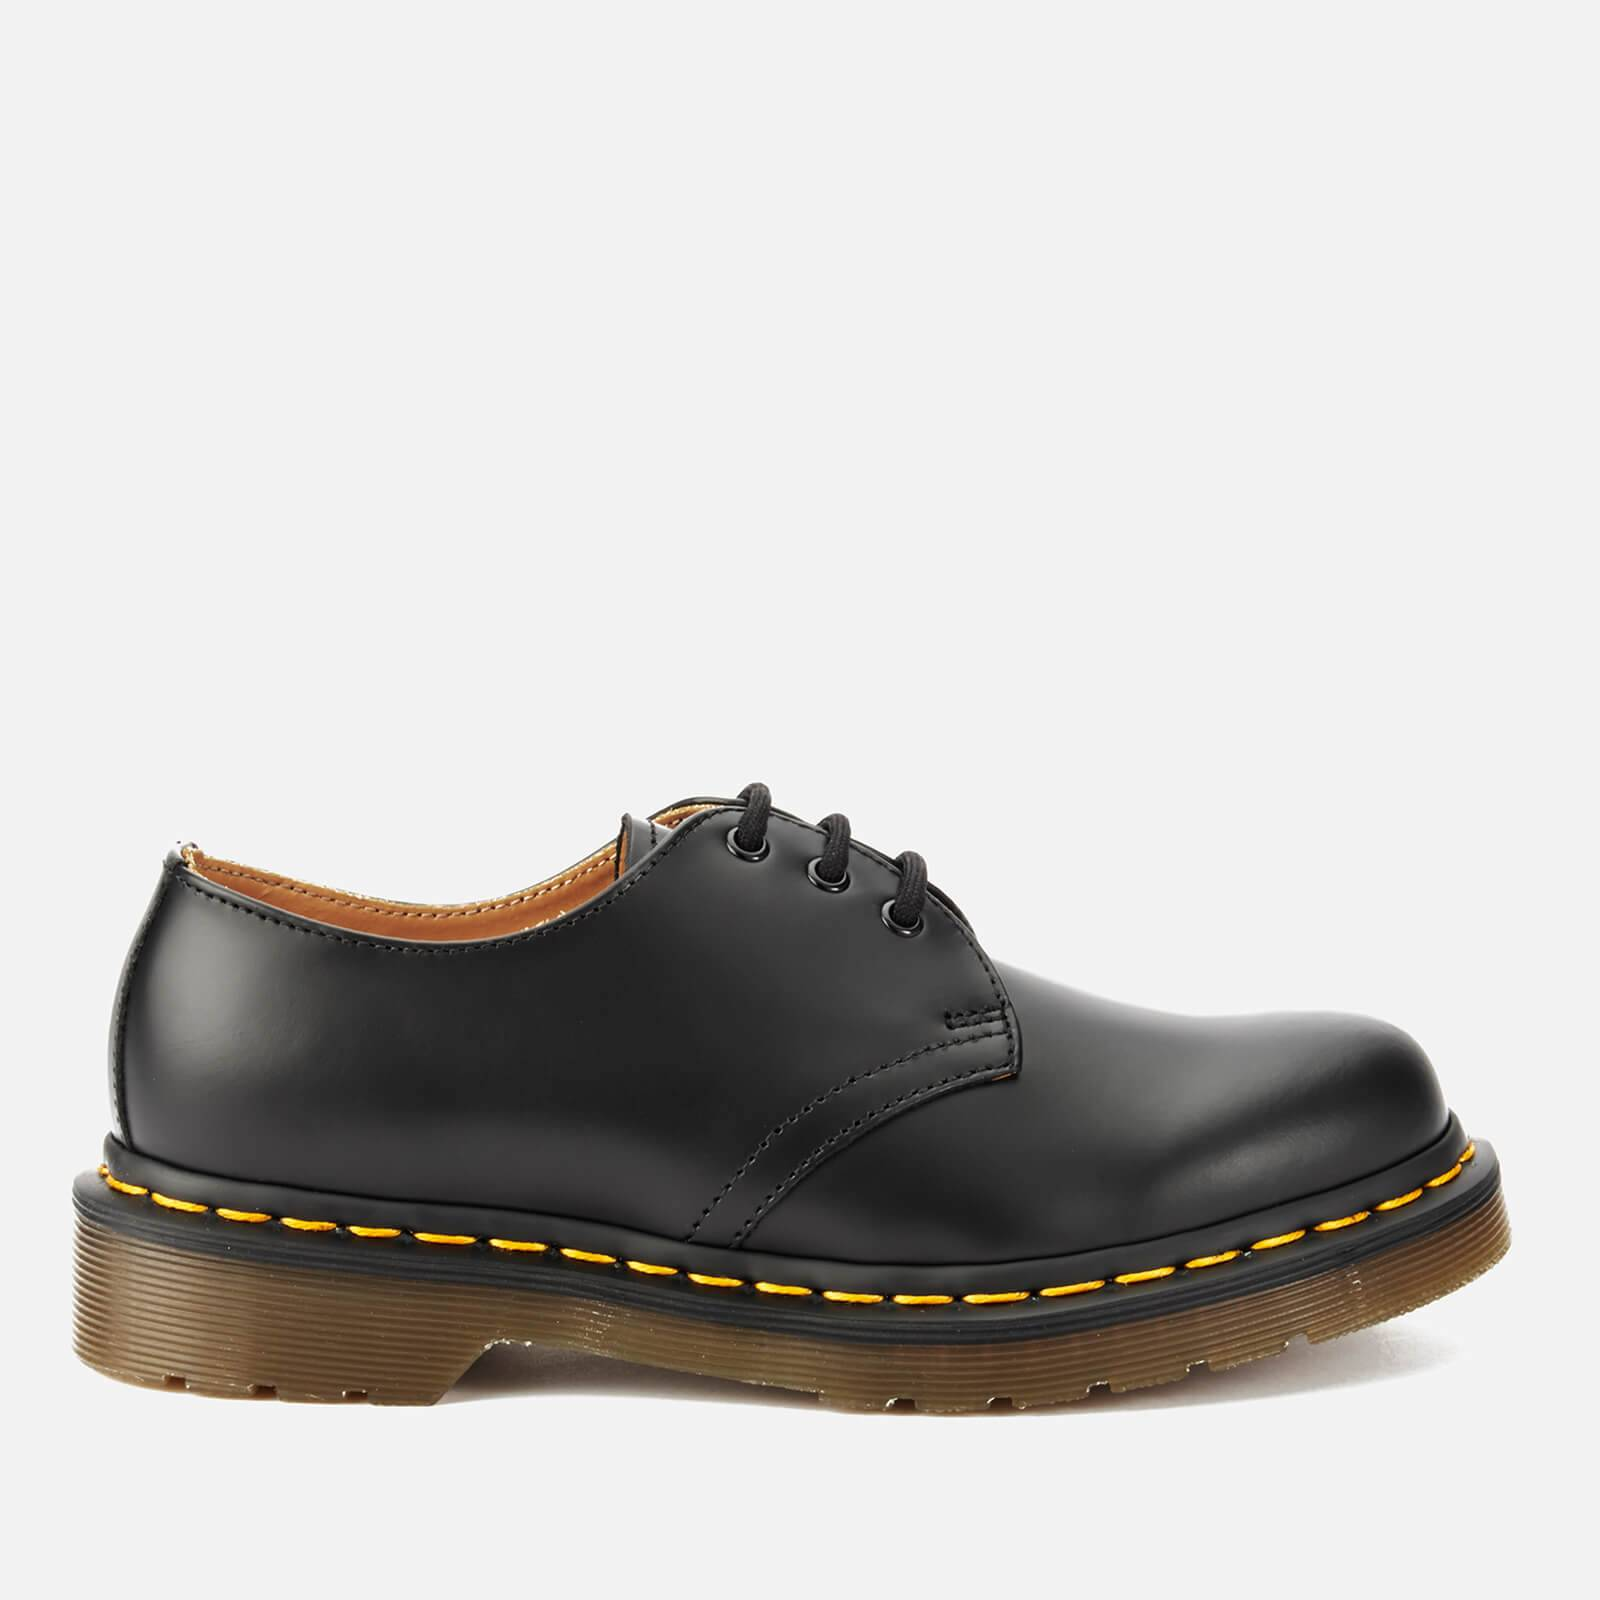 Dr. Martens 1461 Smooth Leather 3-Eye Shoes - Black - UK 5